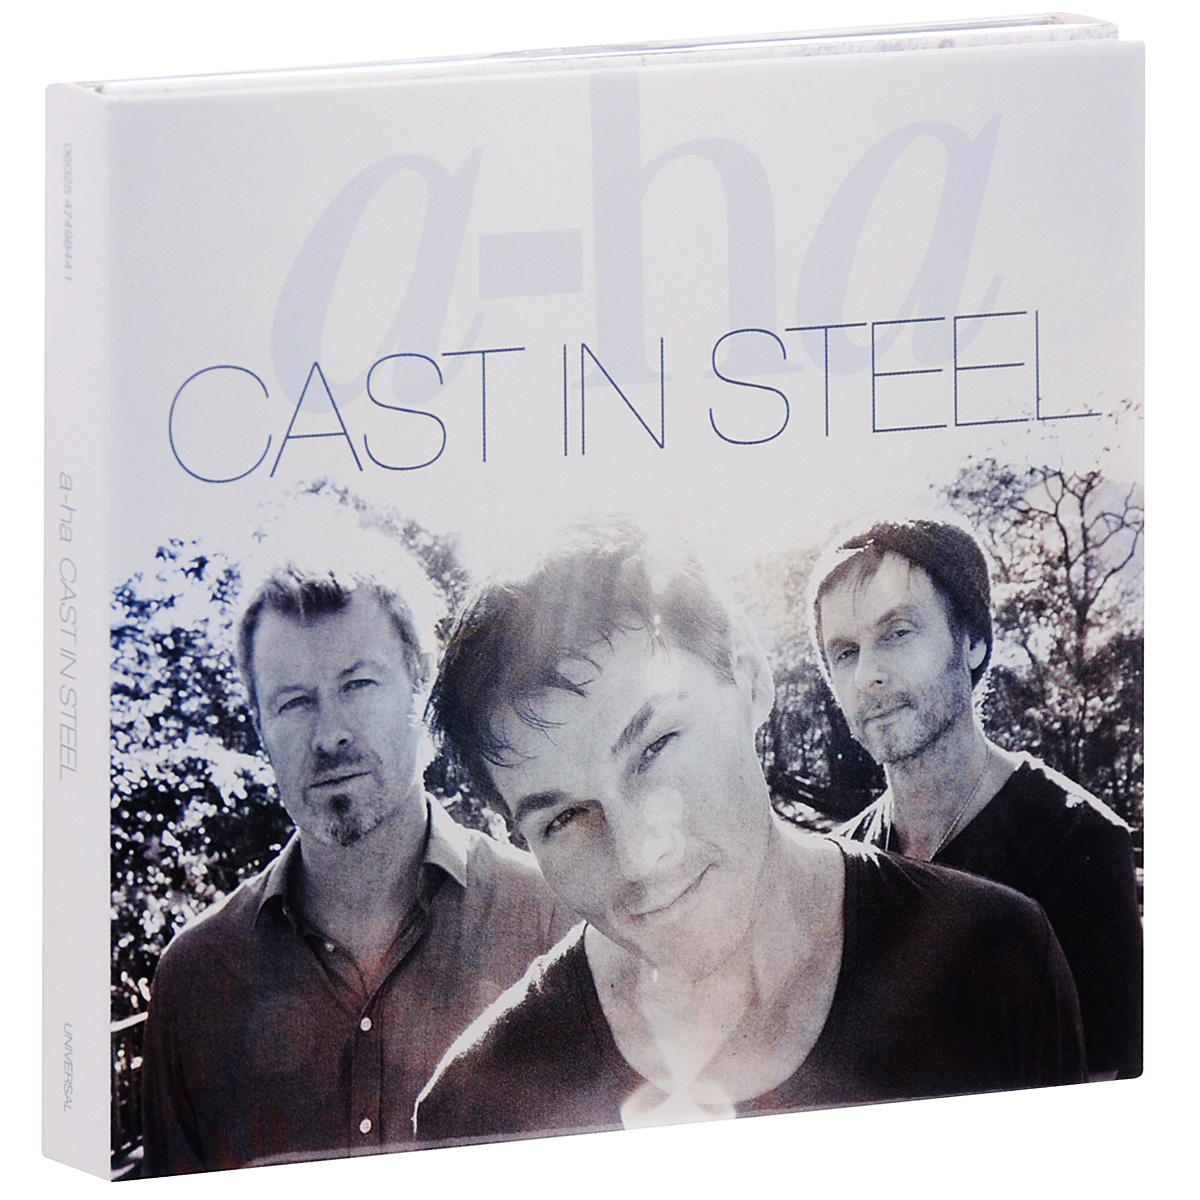 A-Ha A-Ha. Cast In Steel. Deluxe Edition (2 CD)